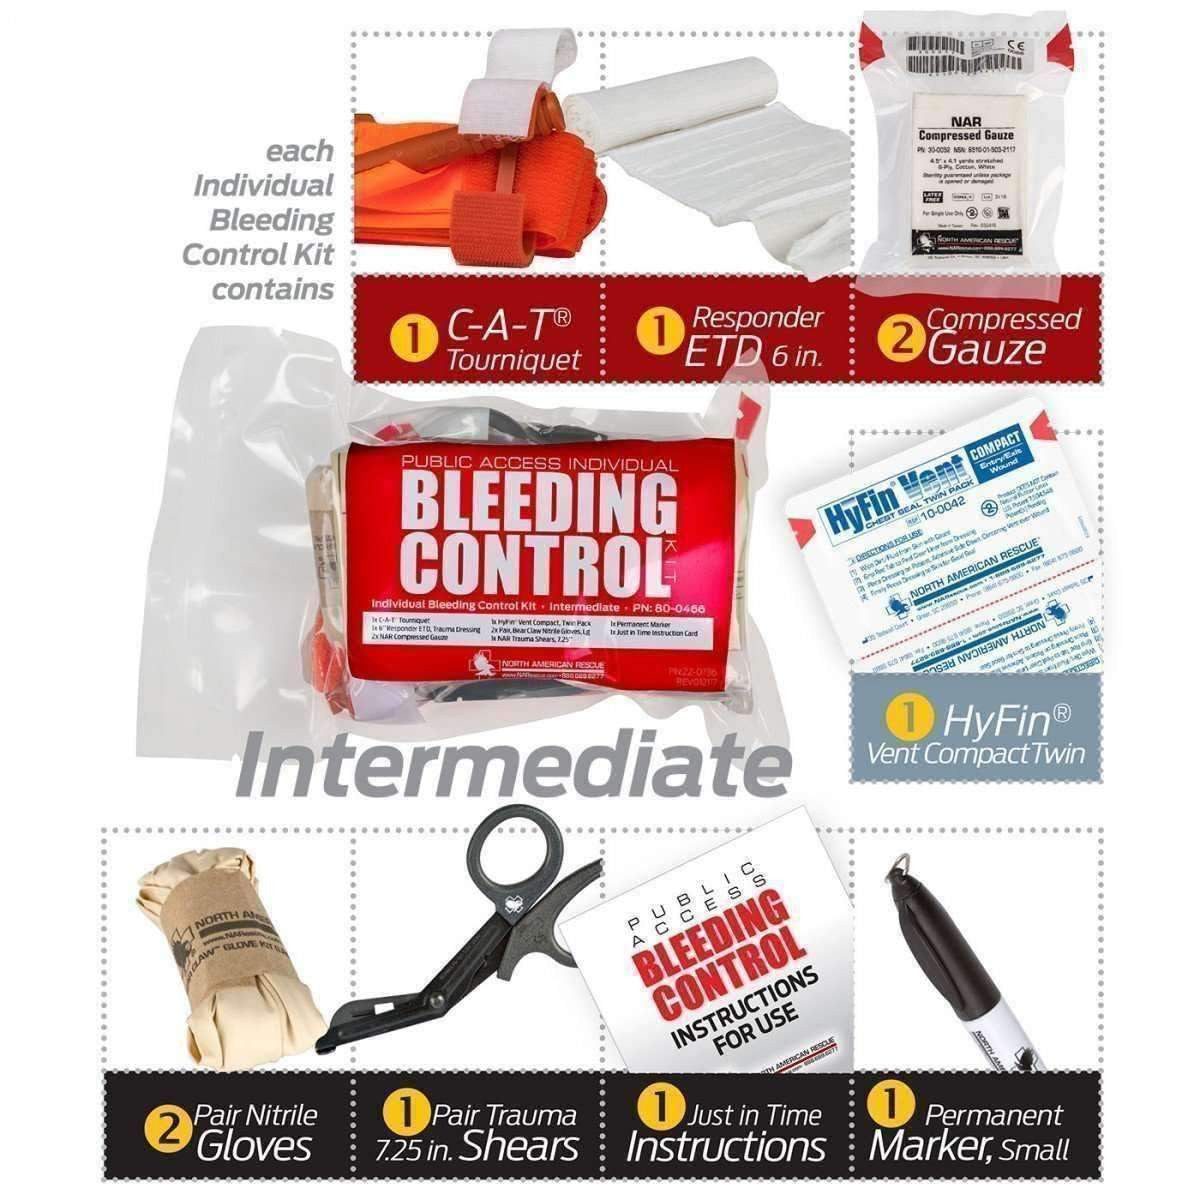 North American Rescue,Public Access Bleeding Control 5 Pack,medic-packs.